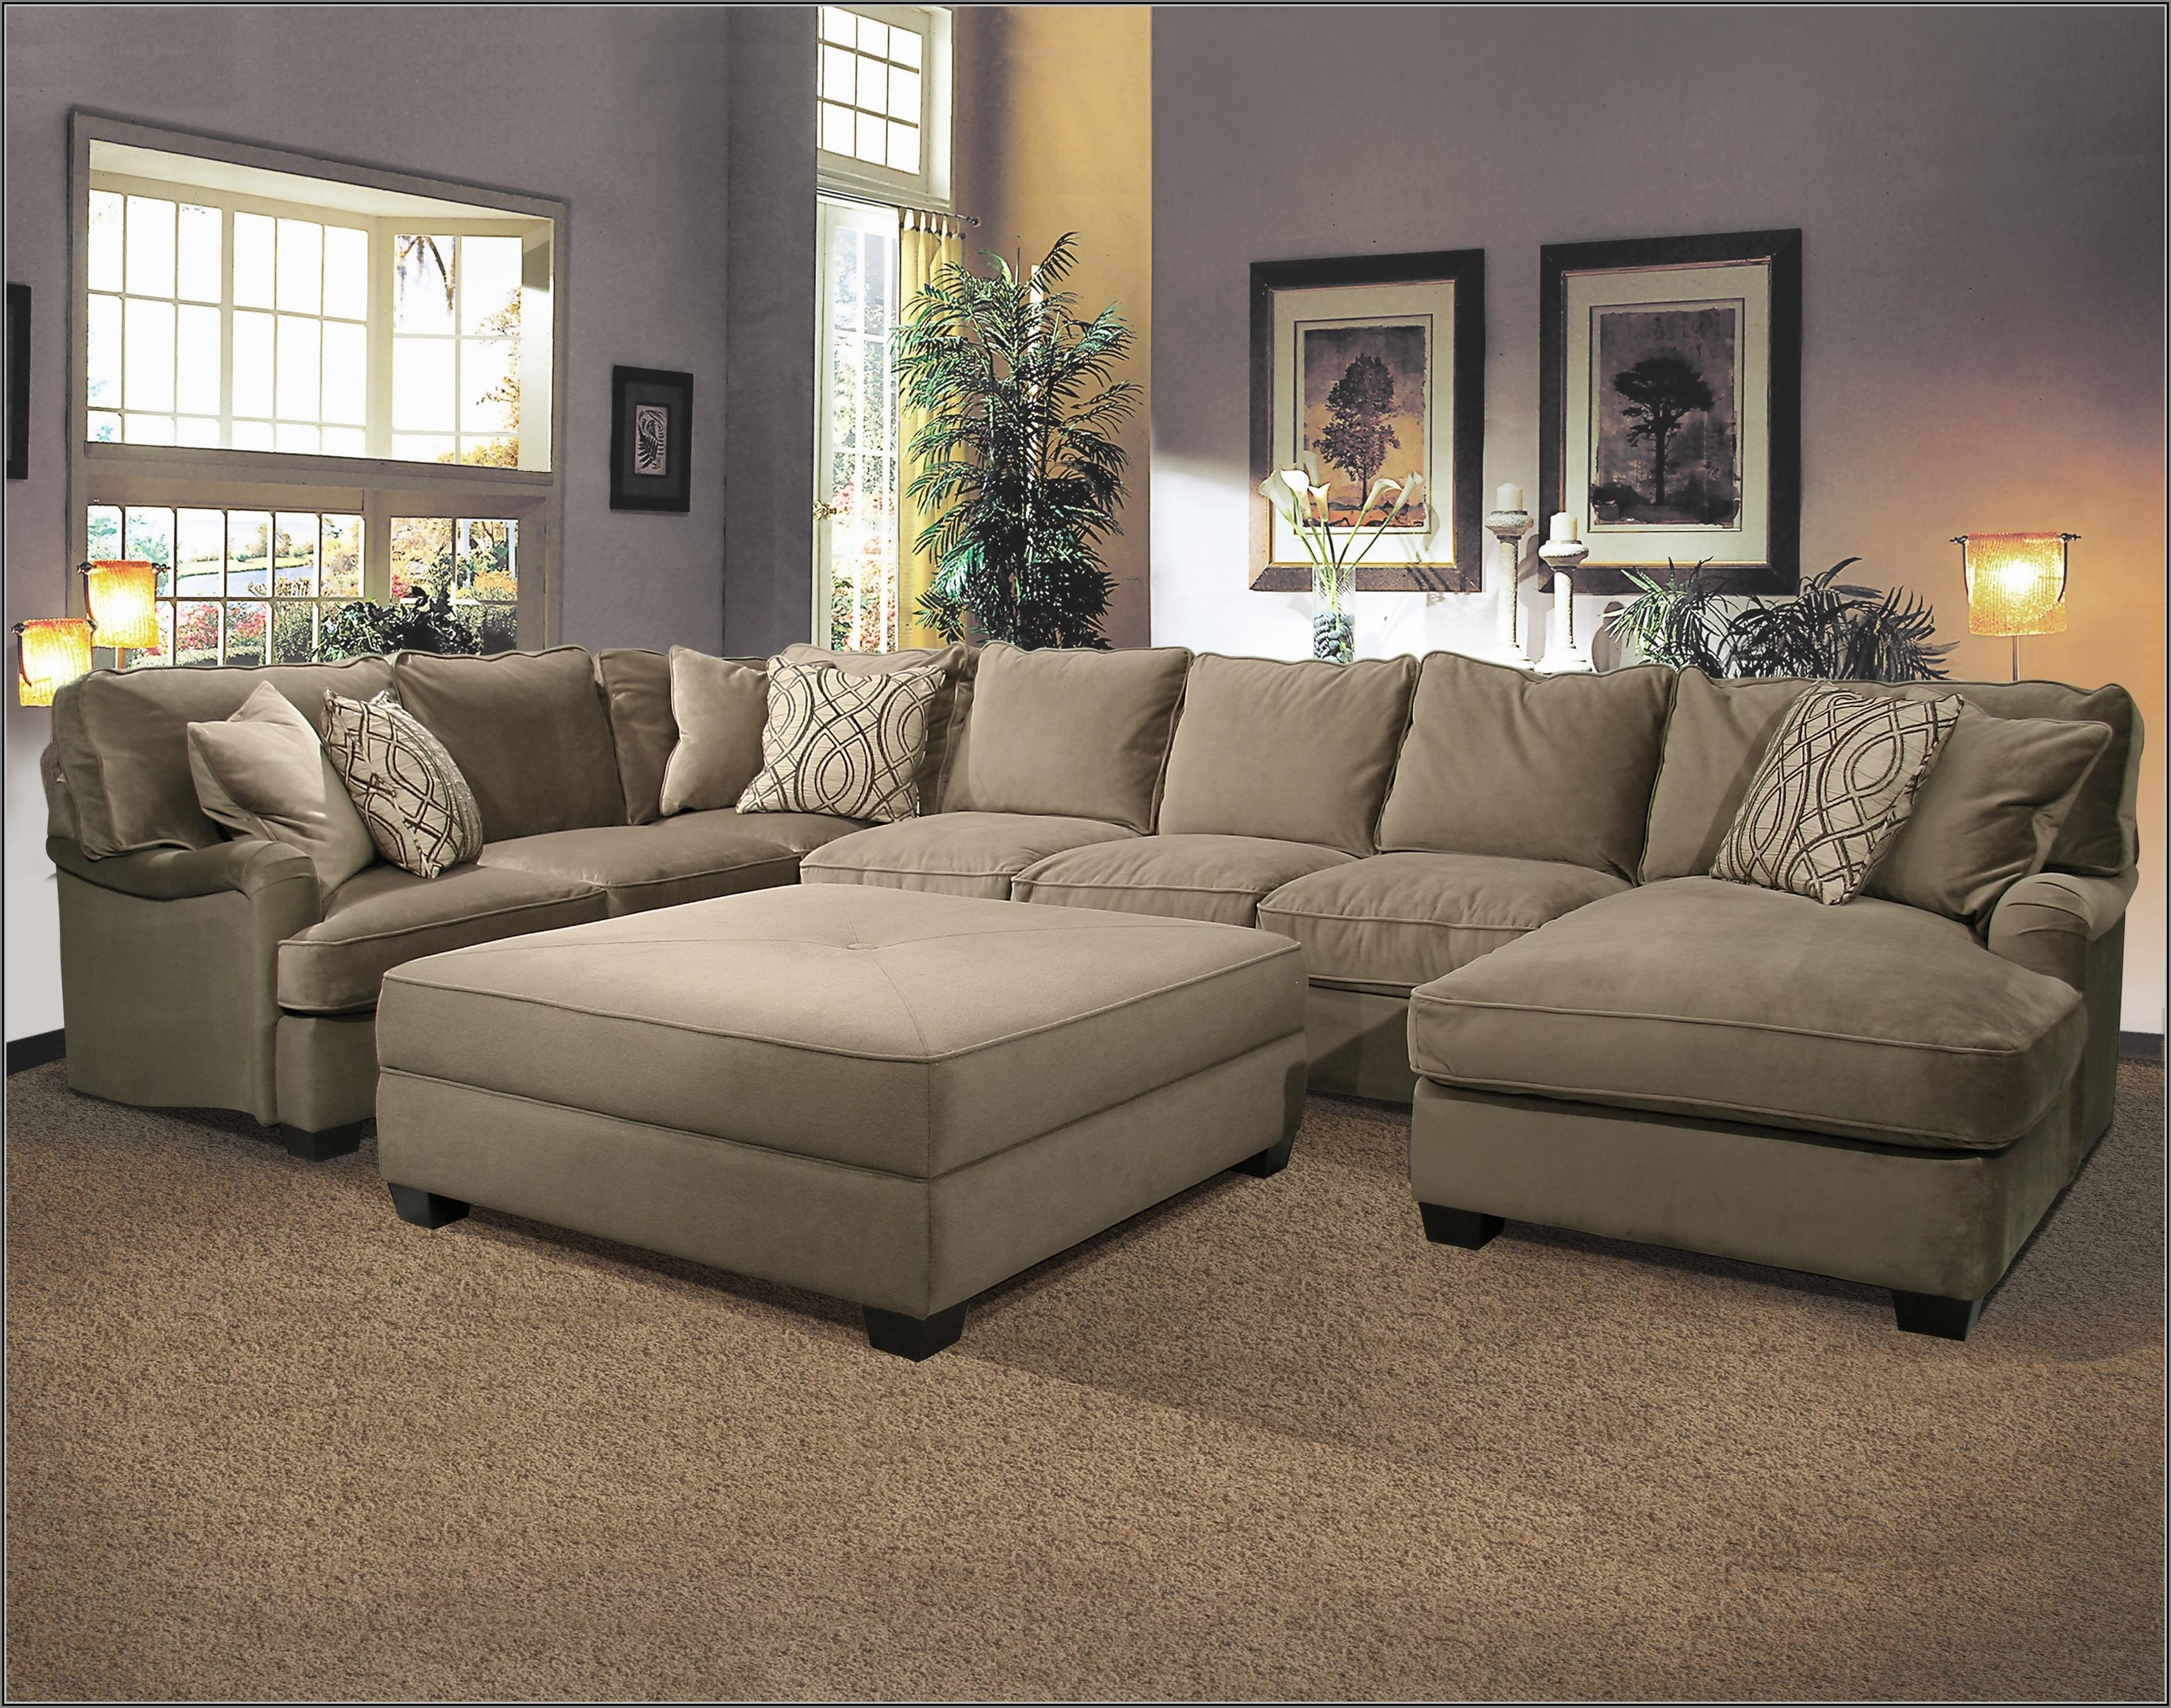 Sectional Sofath Oversized Ottoman Chenille Fabric Matching pertaining to Sectional Sofas With Oversized Ottoman (Image 12 of 15)